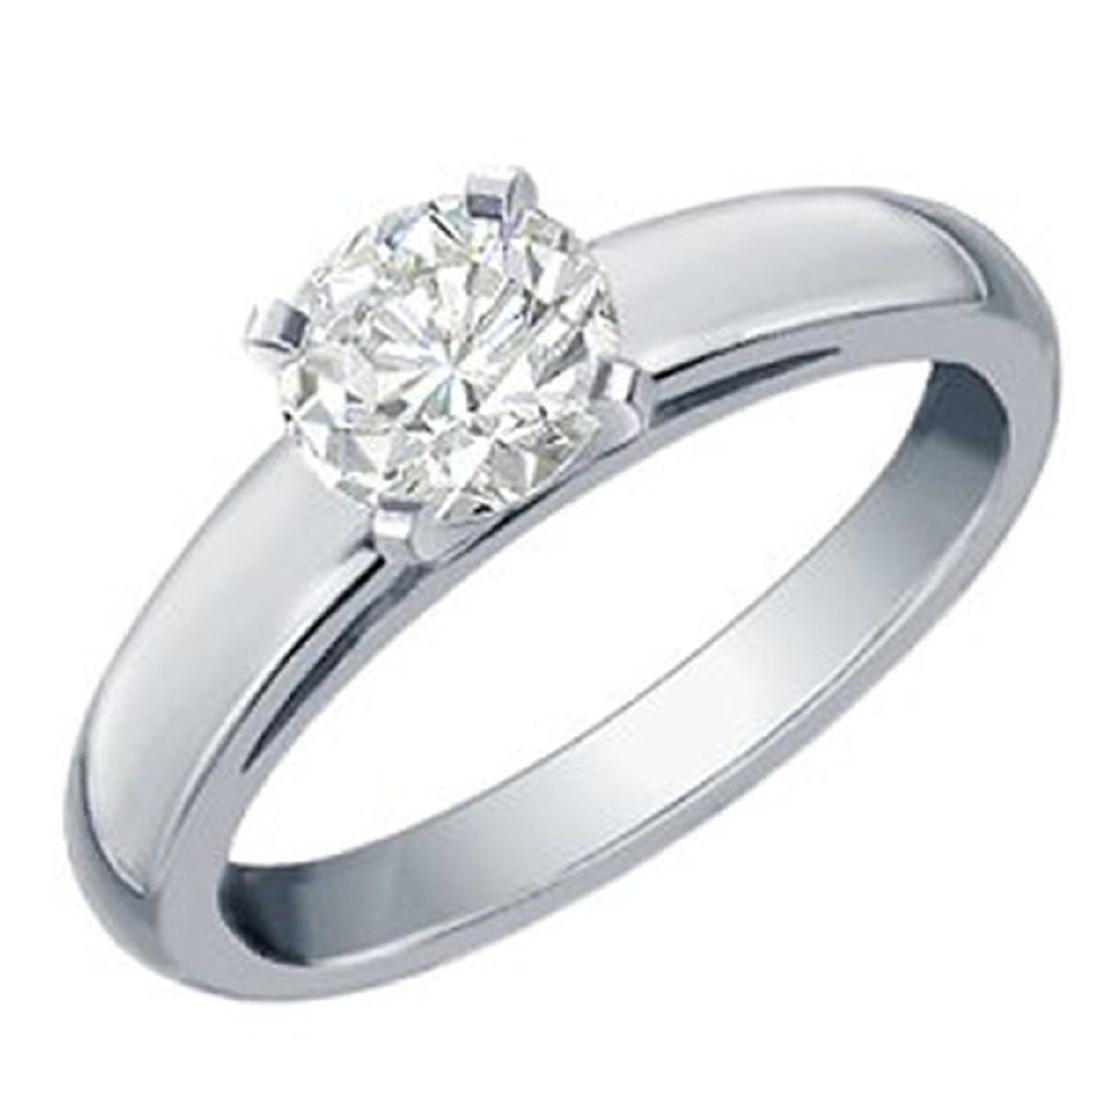 1.25 ctw VS/SI Diamond Solitaire Ring 18K White Gold -